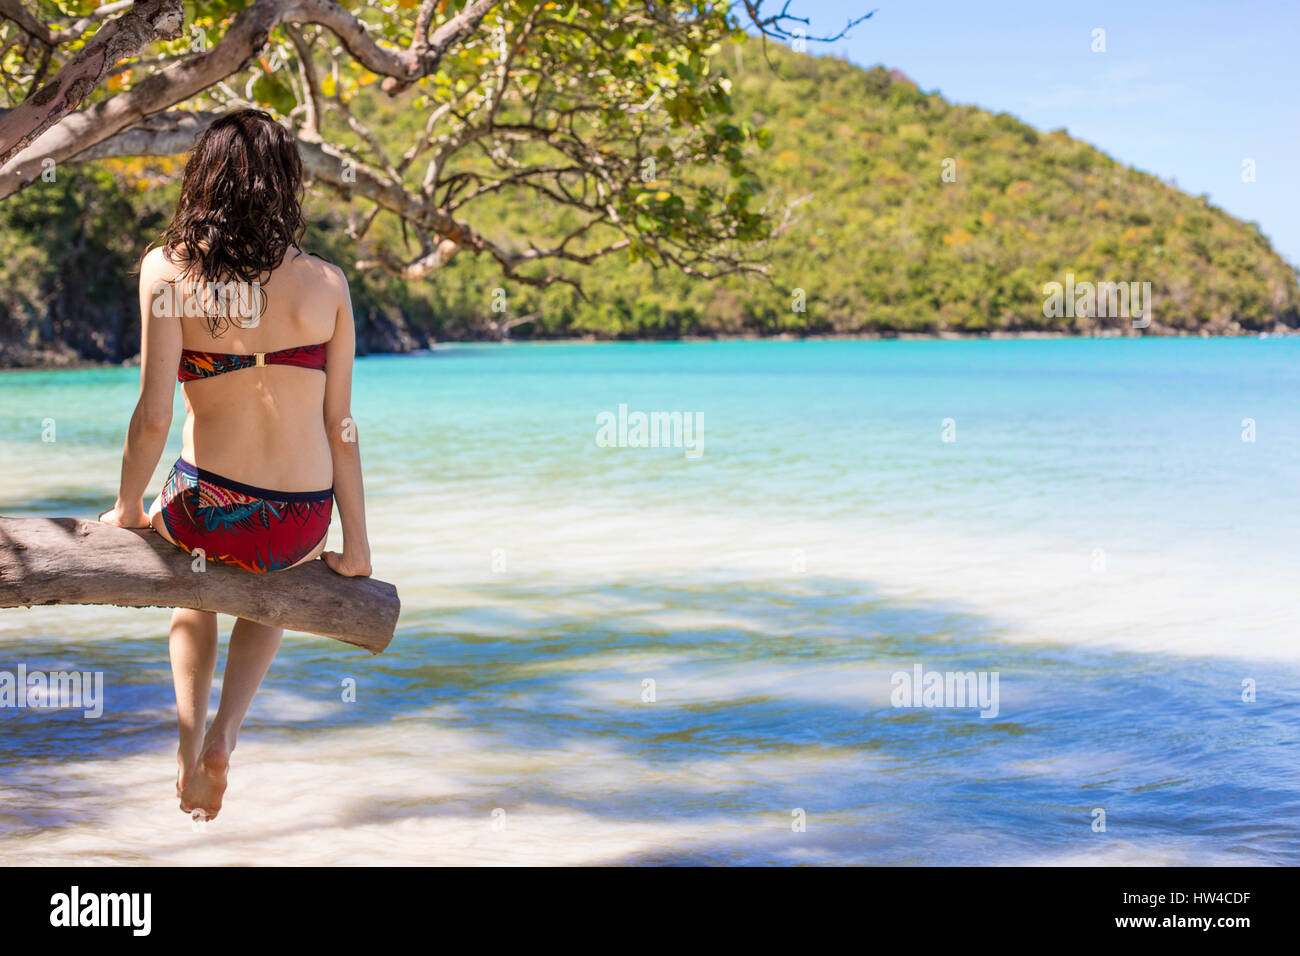 Caucasian woman sitting on branch over tropical beach Stock Photo